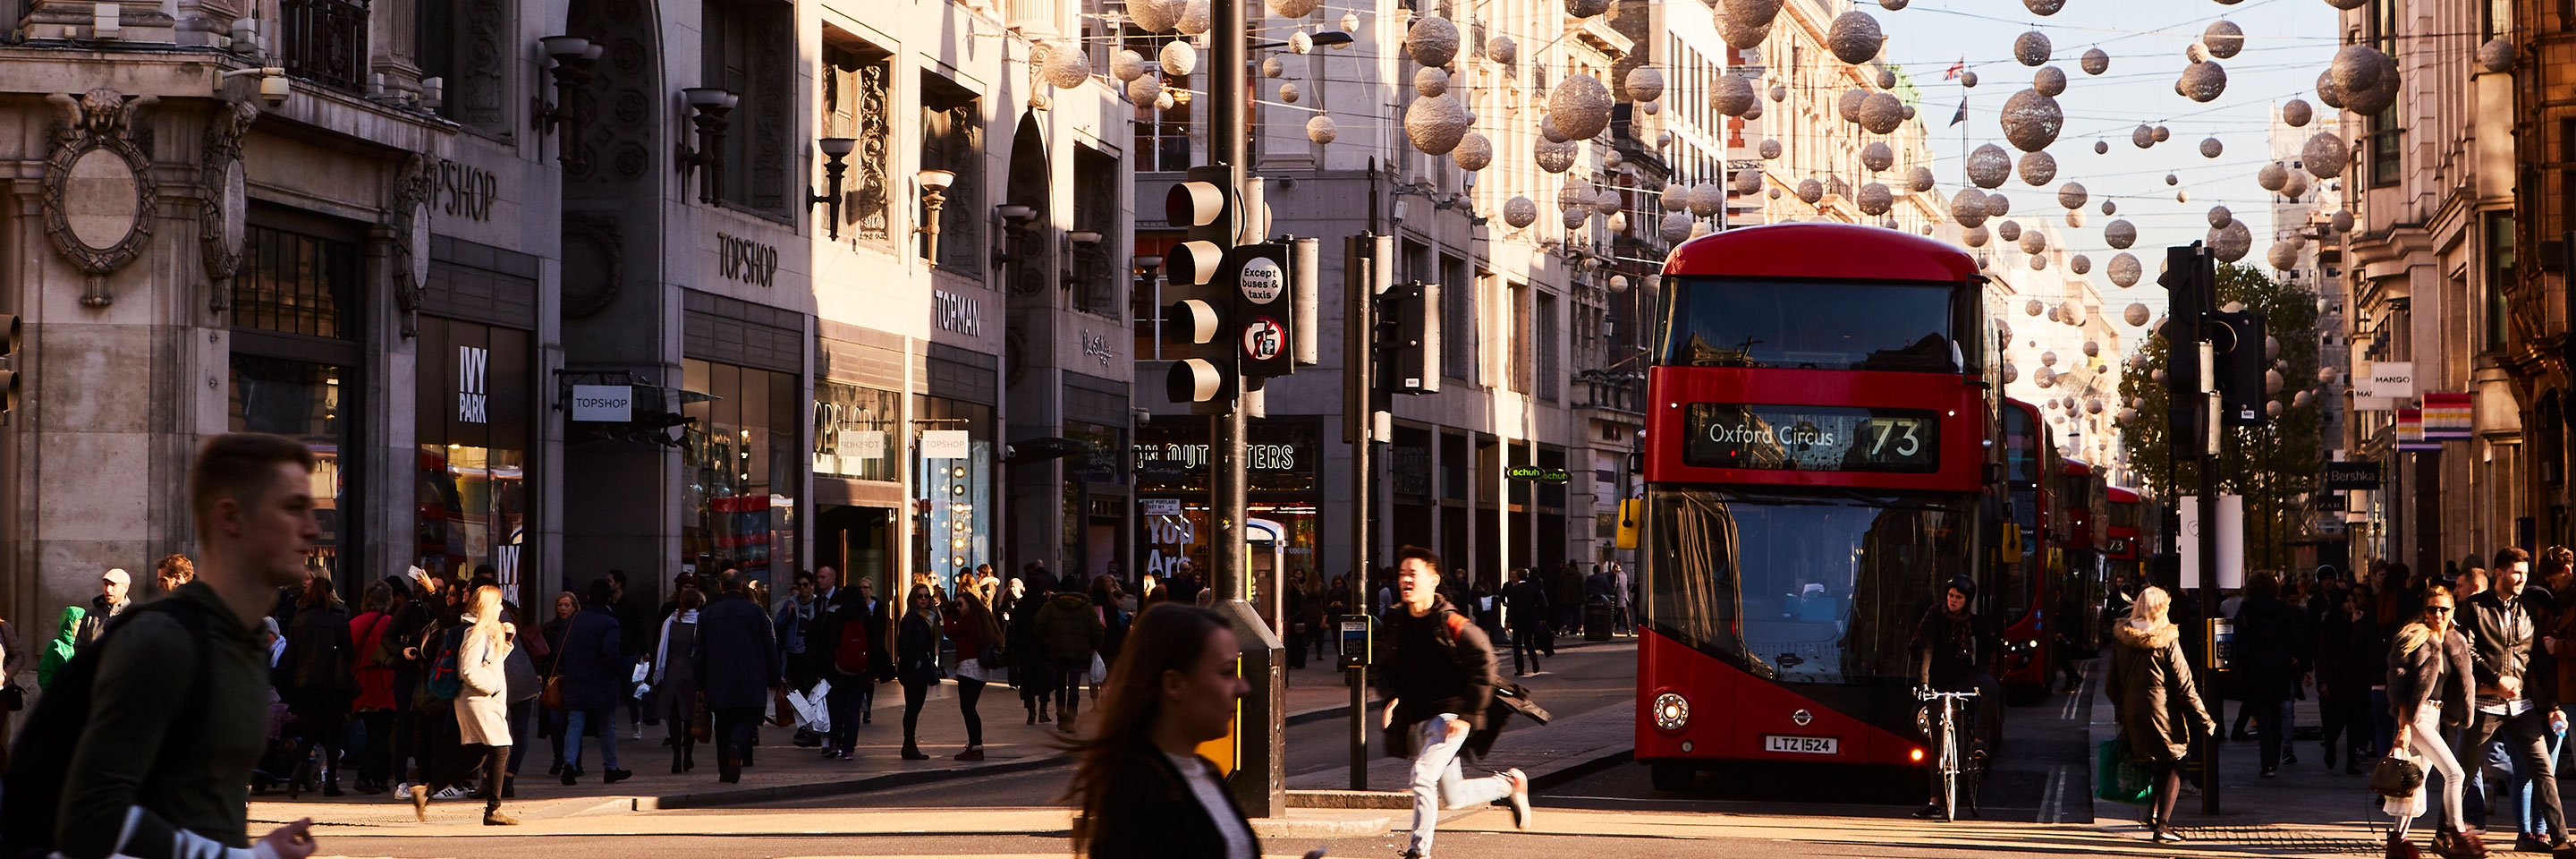 Busy Oxford Street with red double-decker, route 73